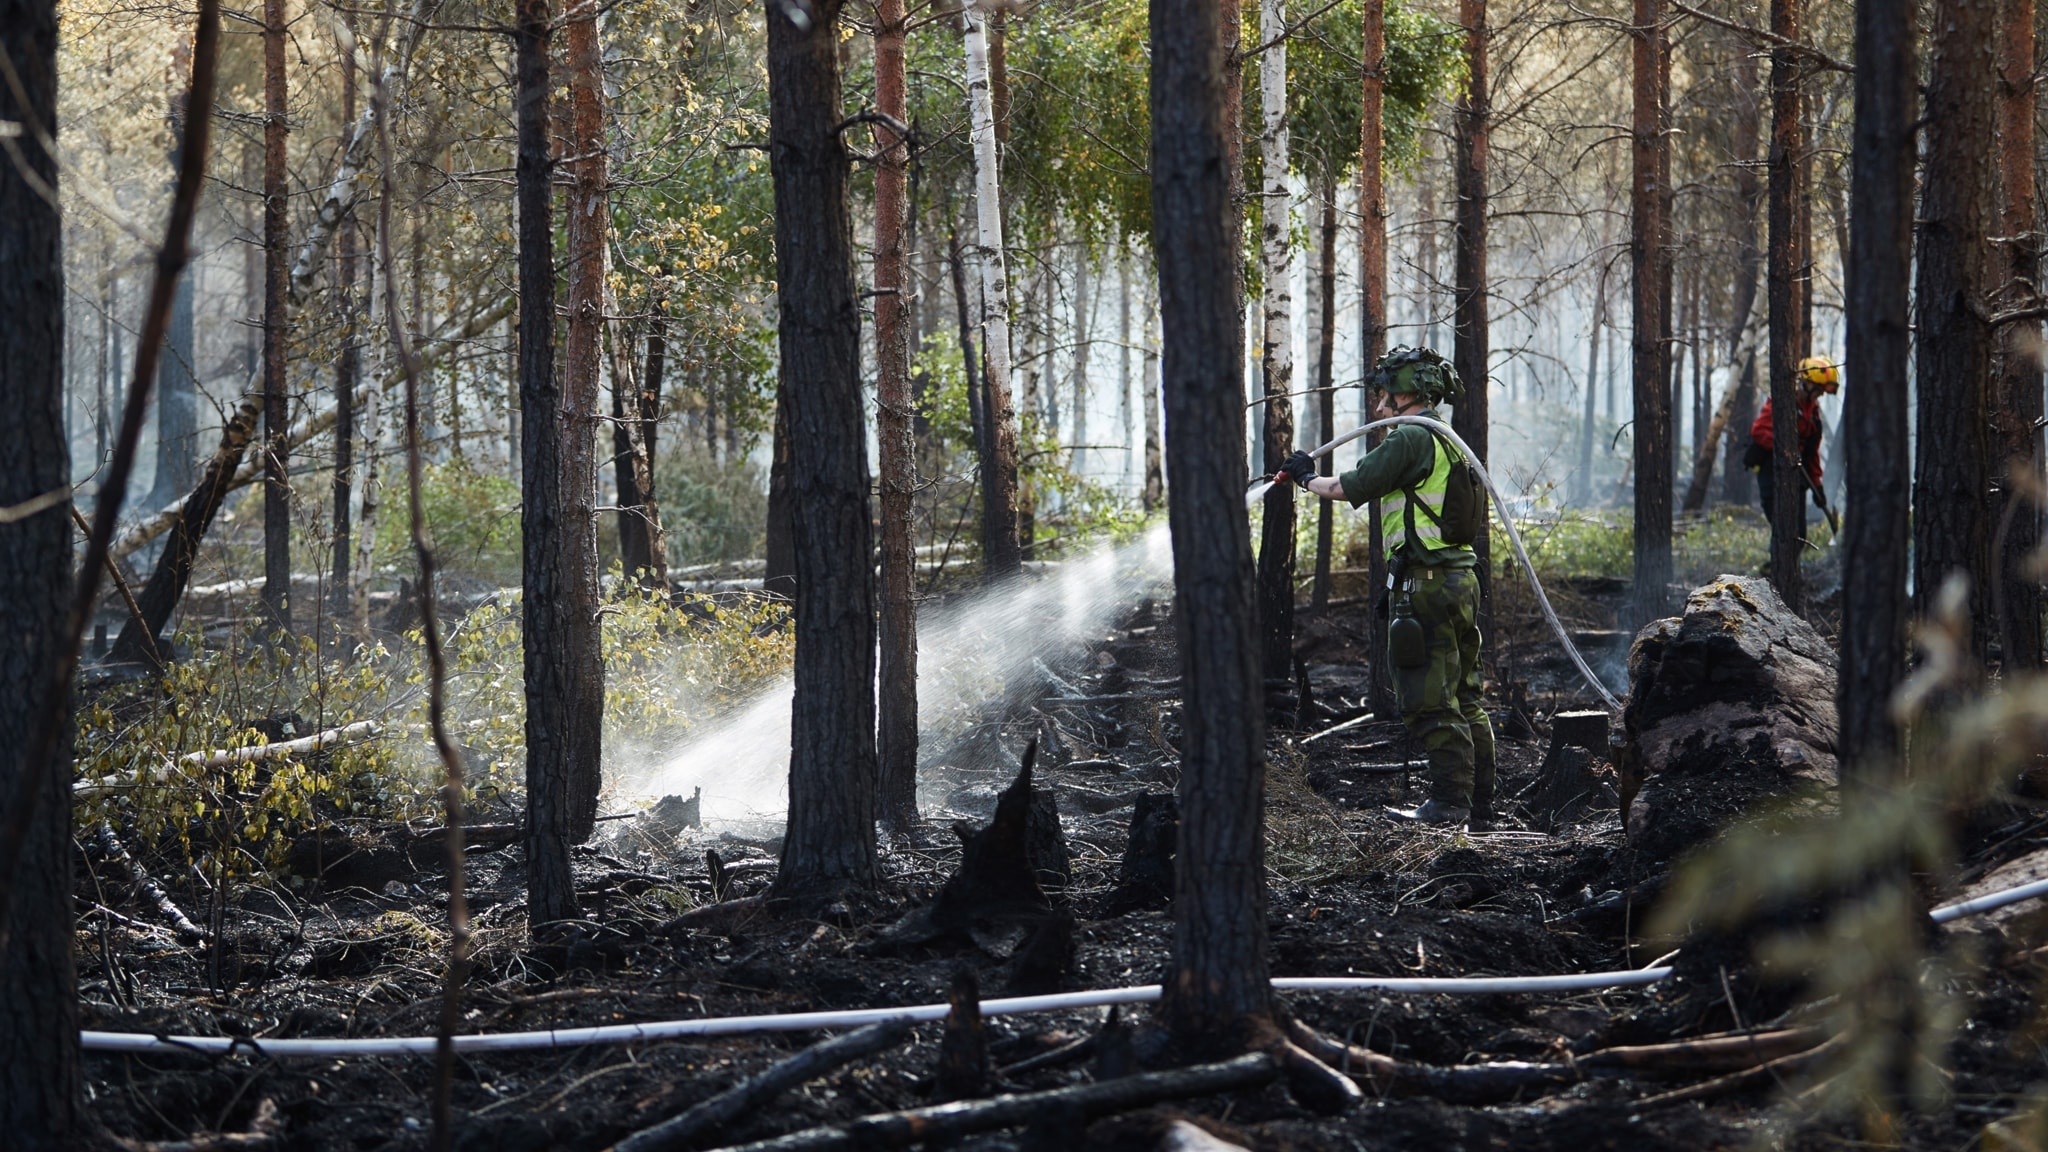 Wildfires, 'Muslims in Sweden: the first 1300 years', Stockholm BBQ ban, and Sweden likely to achieve 2030 renewable goals this year